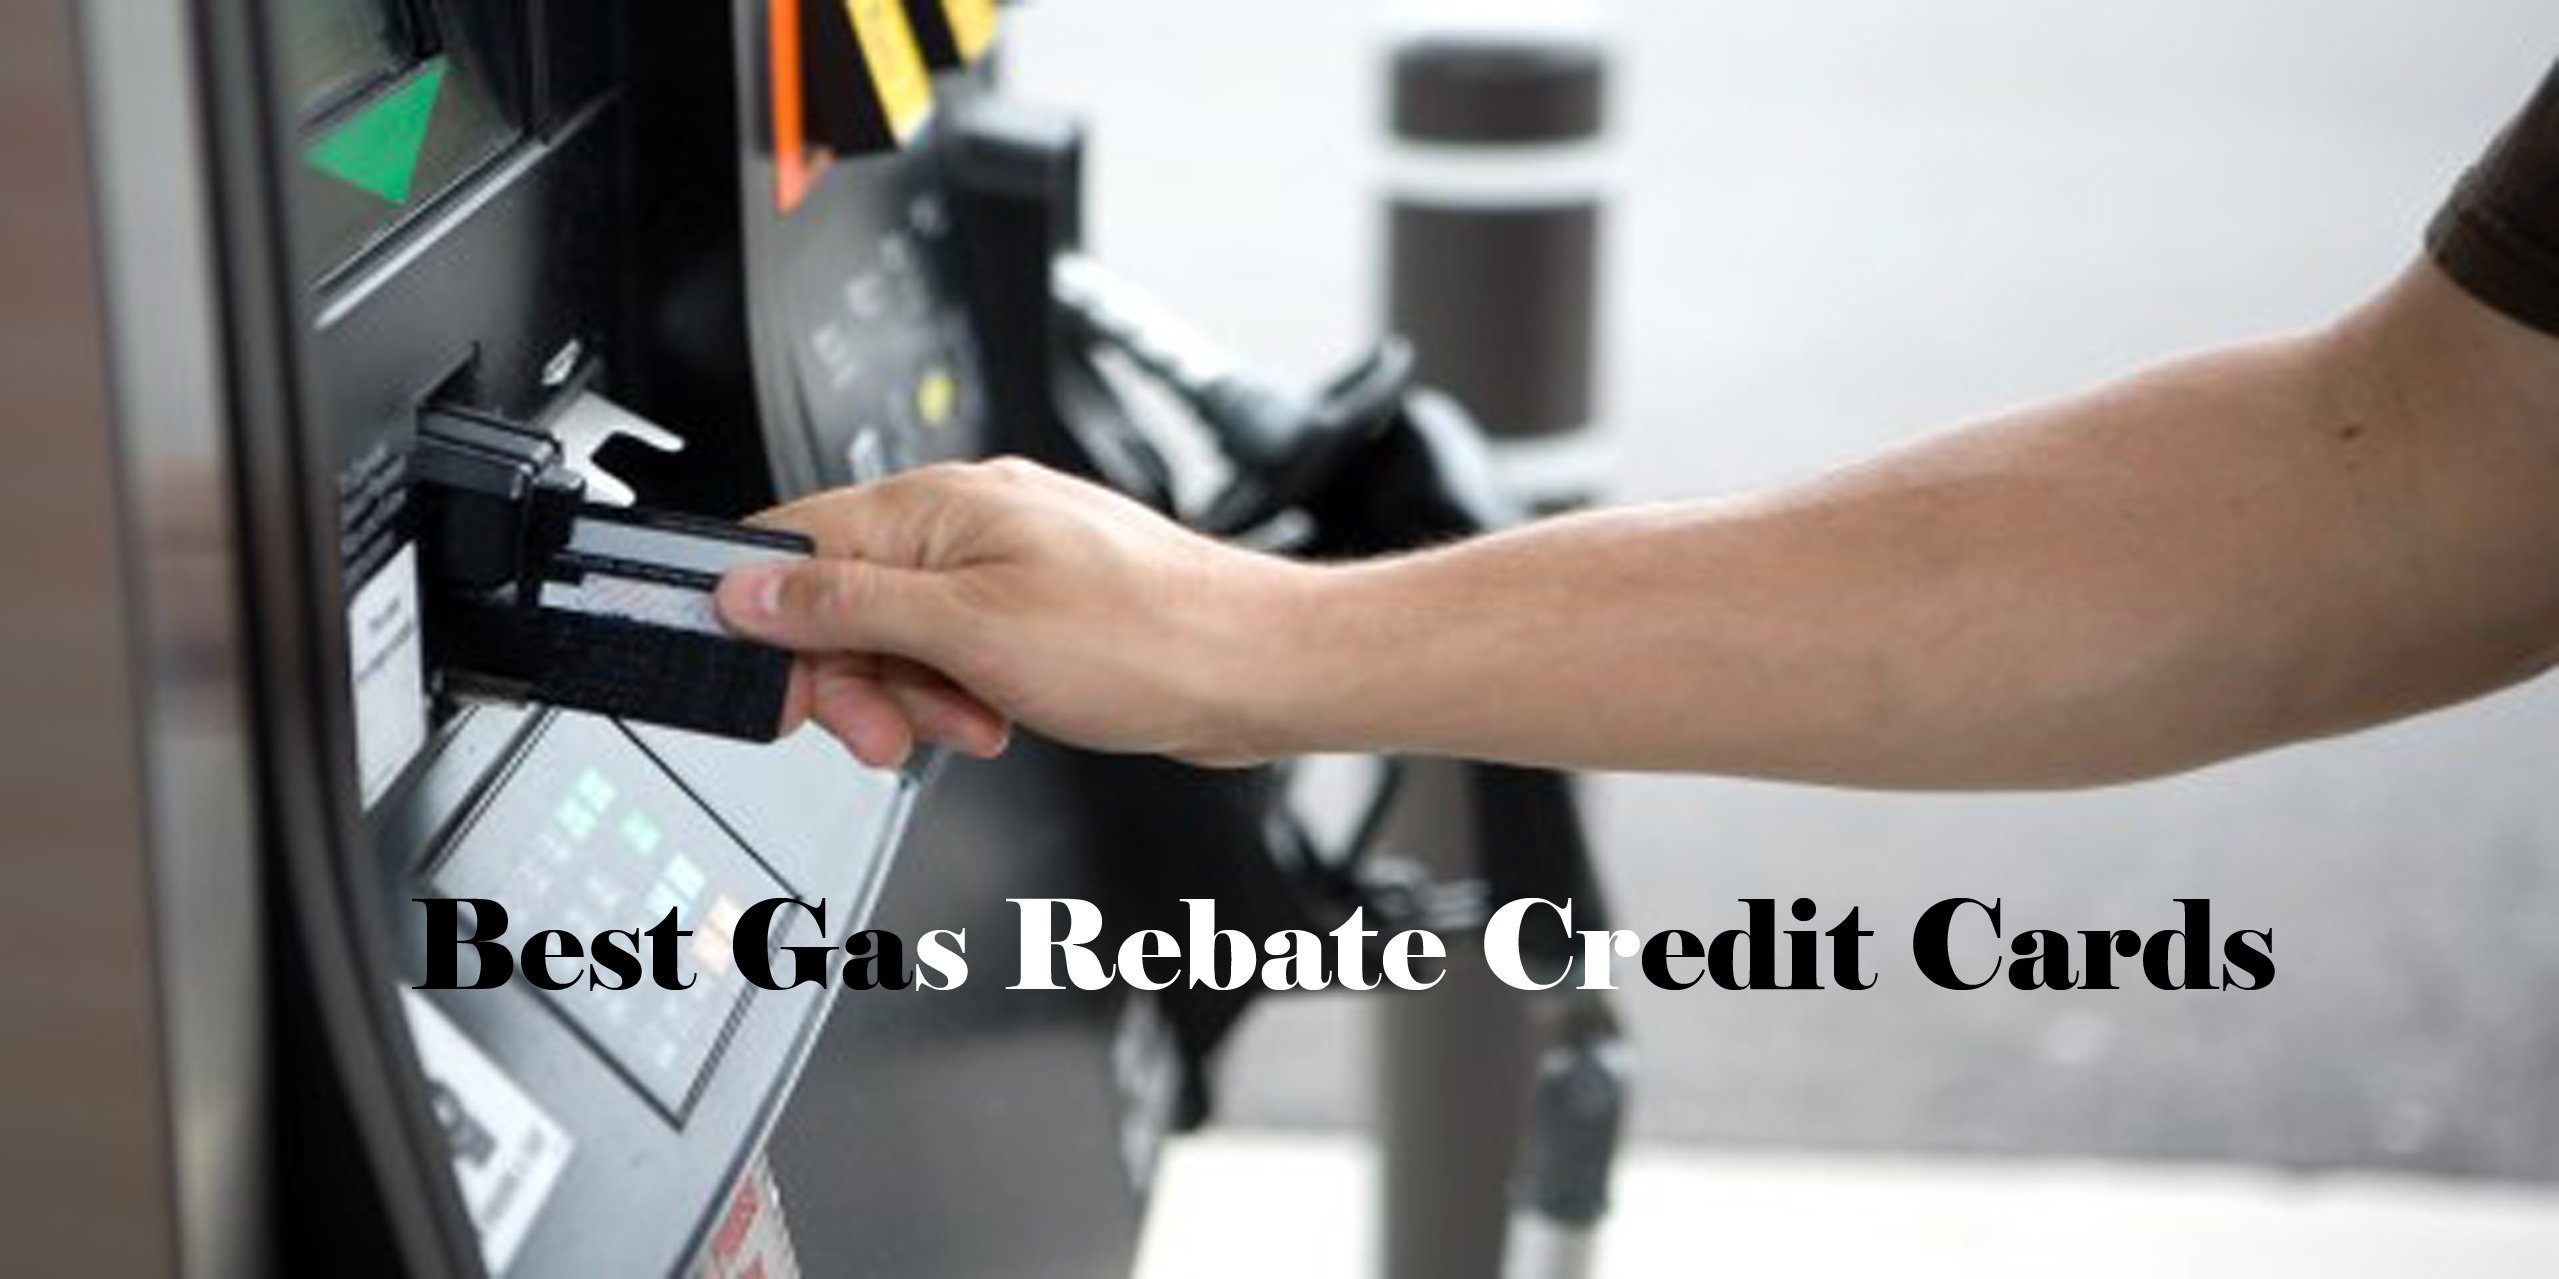 Best Gas Rebate Credit Cards - Rebate Credit Cards